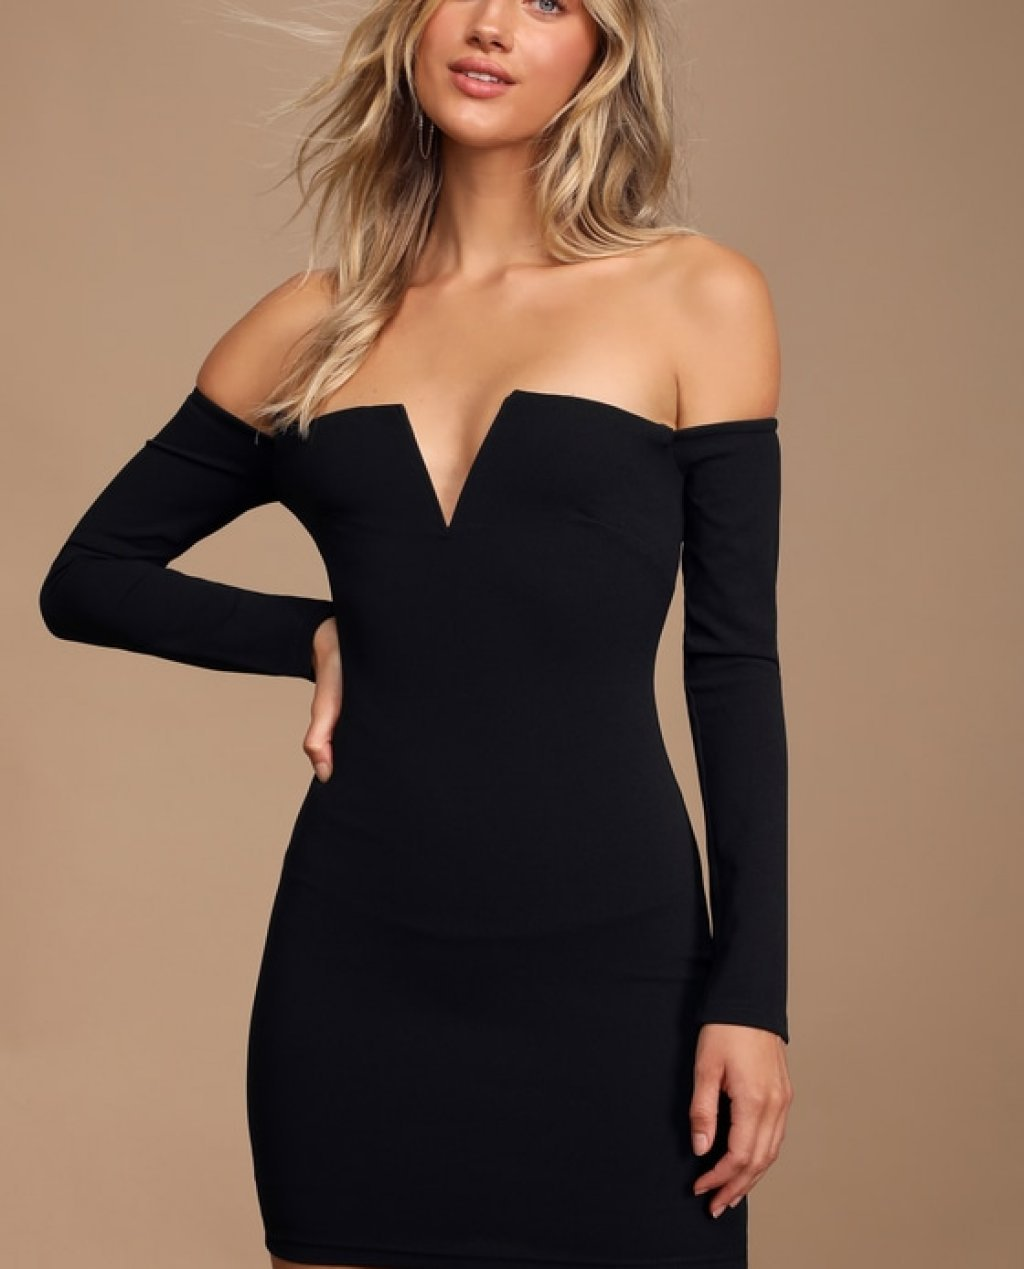 Black bodycon dress off the shoulder volleyball during the elizabethan